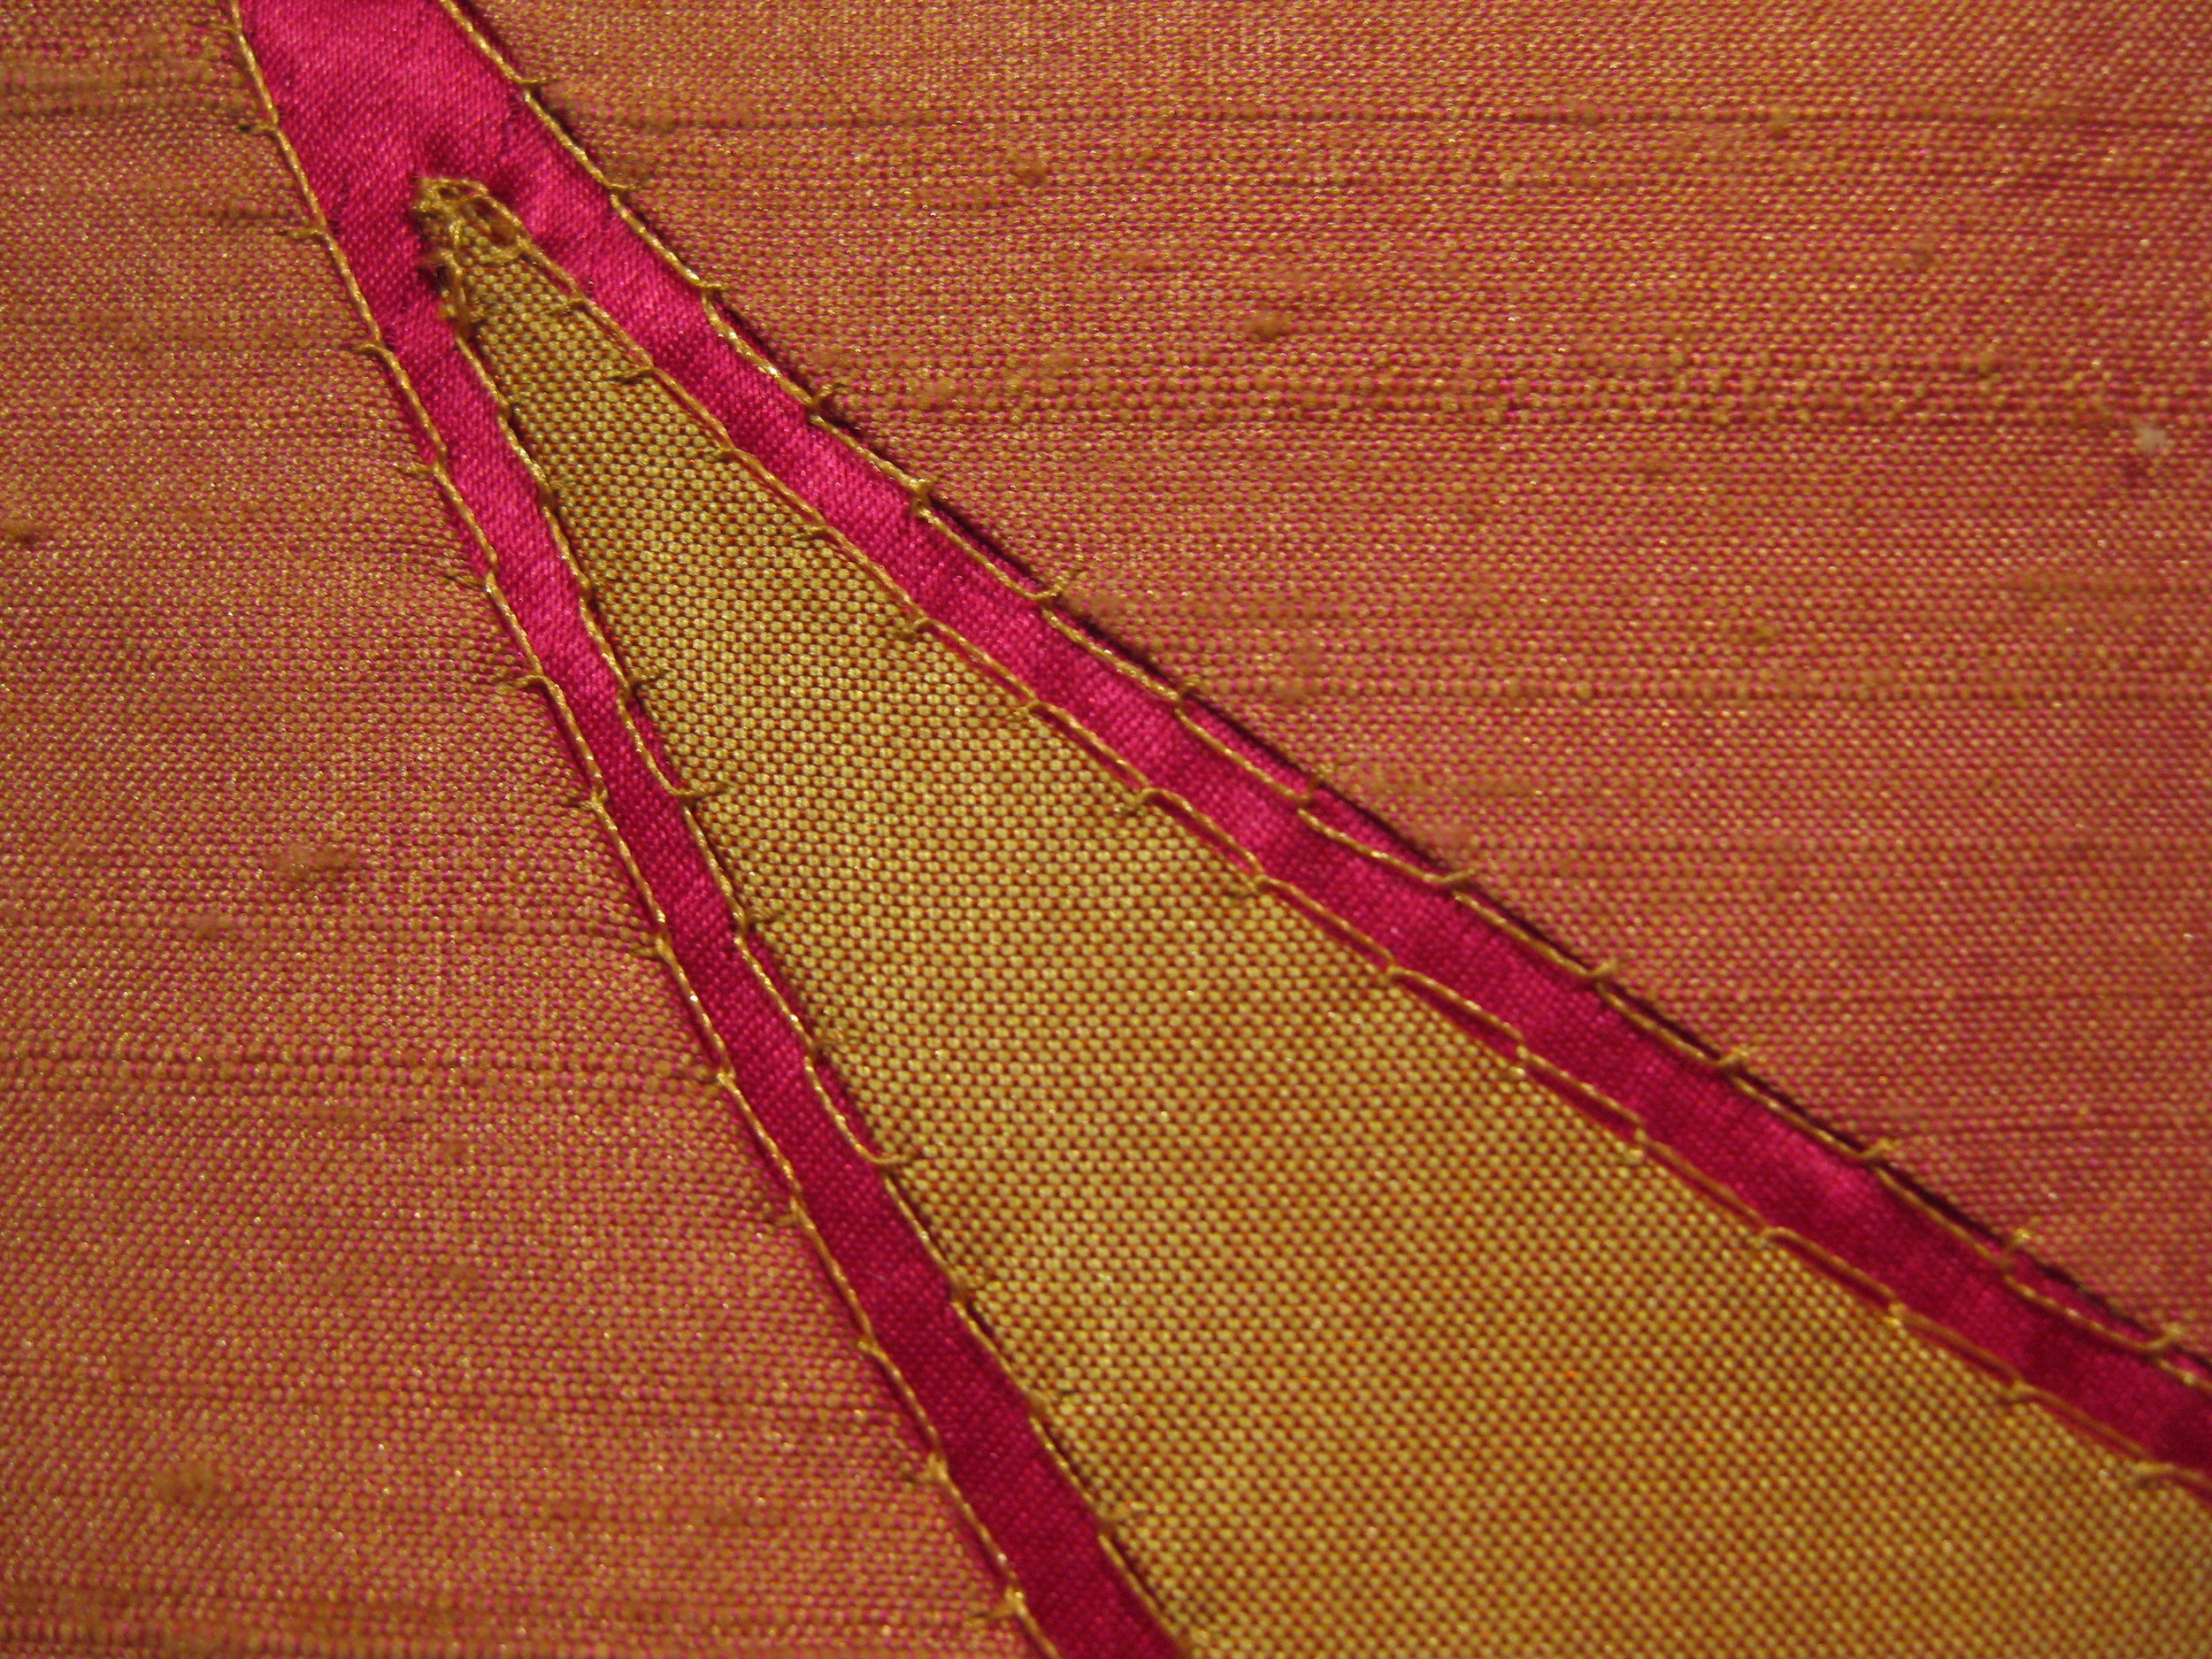 Entry #7 seam detail.JPG